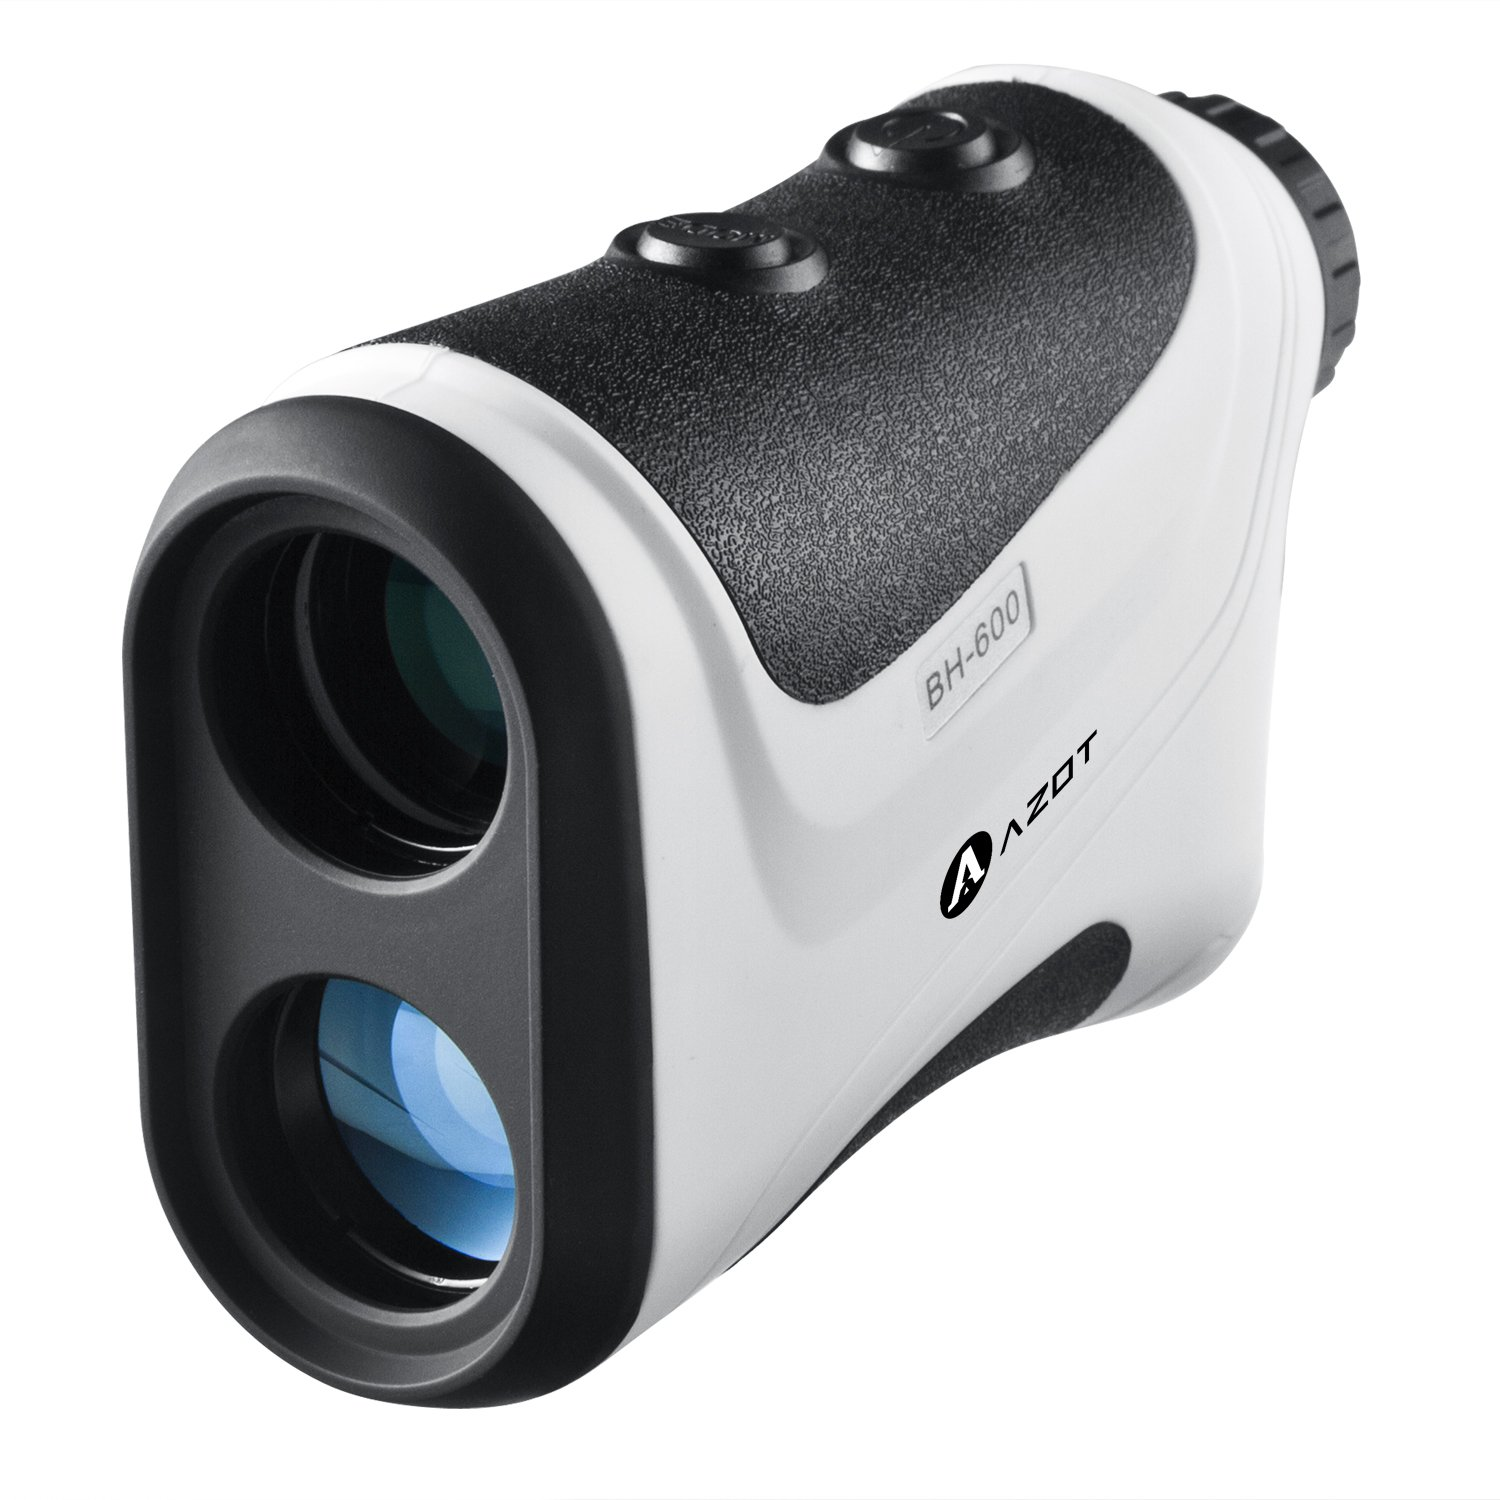 AZOT Golf Rangefinder - Golf Laser Range Finder Accurate To 1 Yard, 650 Yard Range, 6X Magnification Speed Measurement (White)